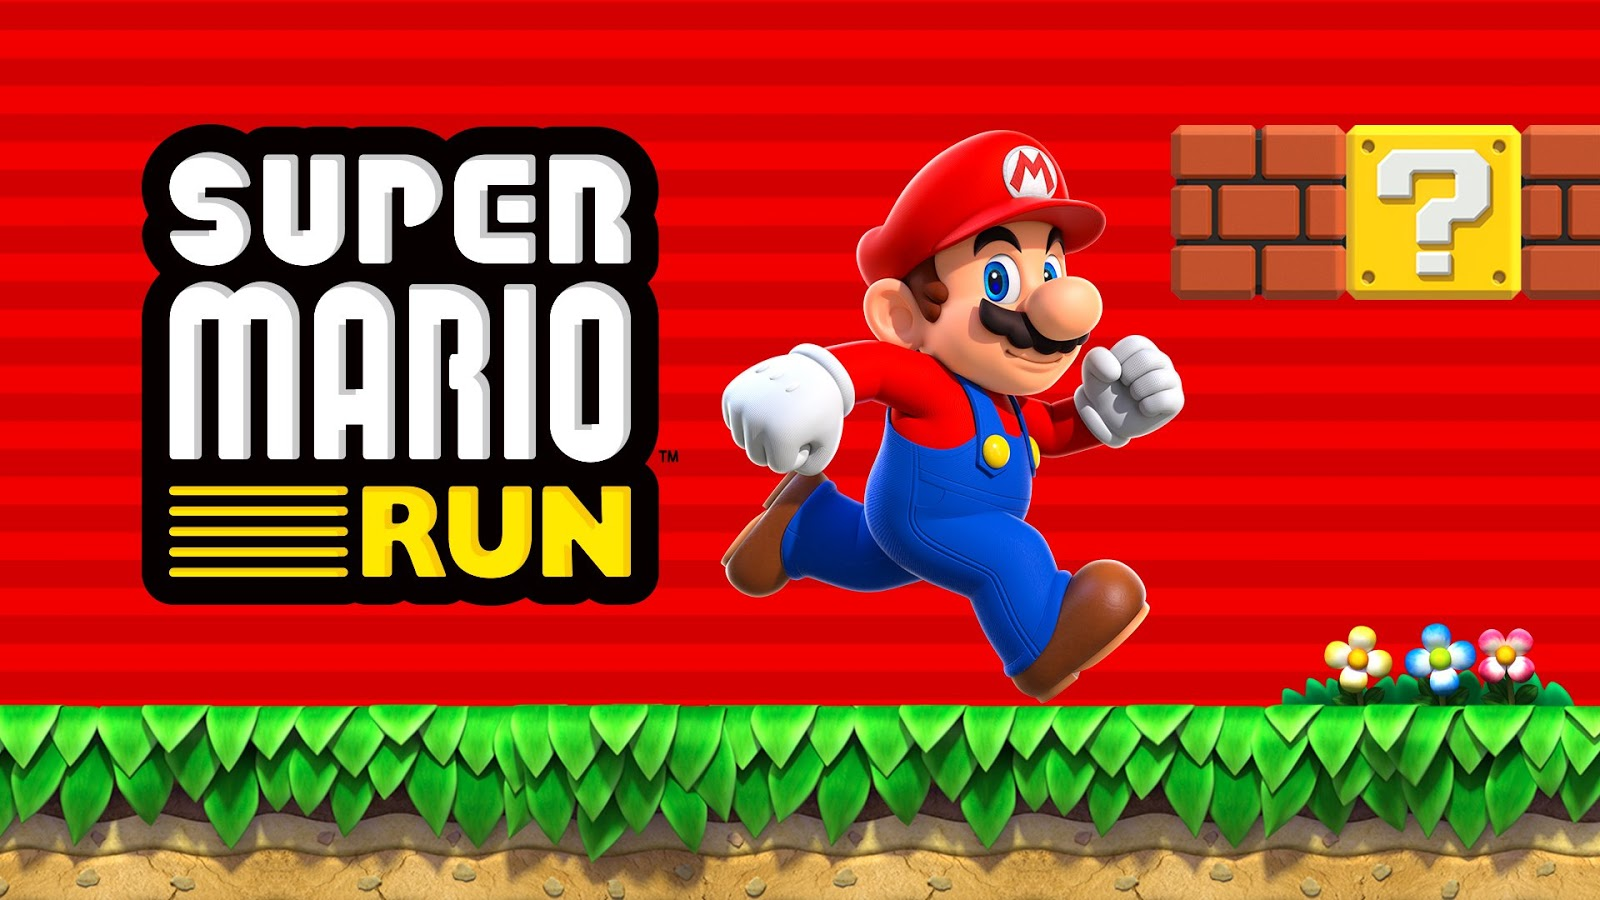 Super Mario Run trucchi su come saltare